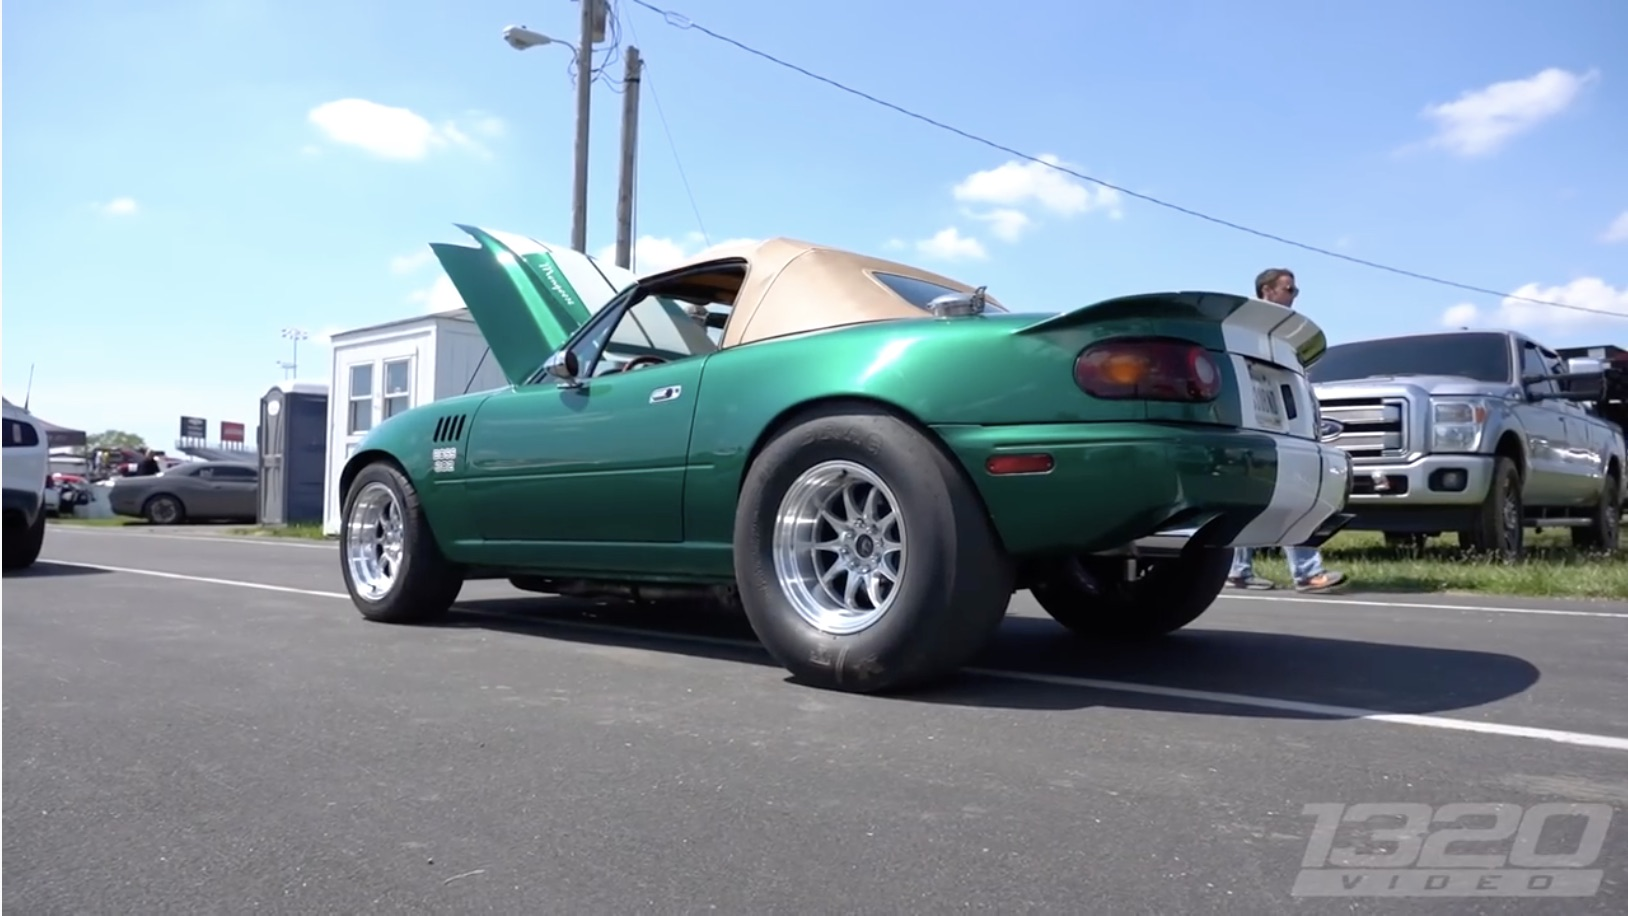 Rippin' Grip: This Beefy Little Ford-Powered Miata Can Get Down On The Strip